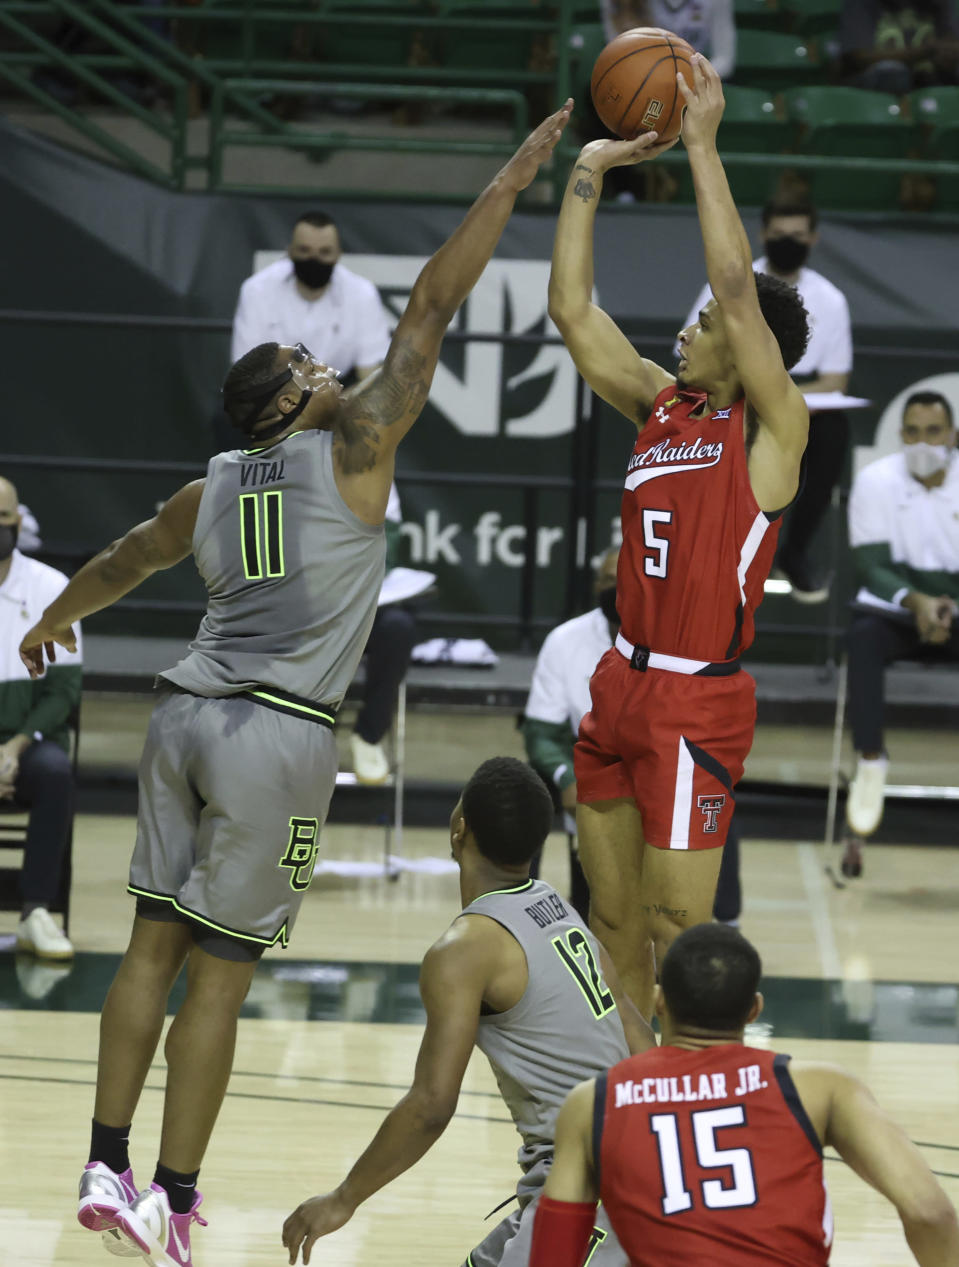 Texas Tech guard Micah Peavy (5) attempts a shot over Baylor guard Mark Vital (11) in the first half of an NCAA college basketball game Sunday, March 7, 2021, in Waco, Texas. (AP Photo/Jerry Larson)